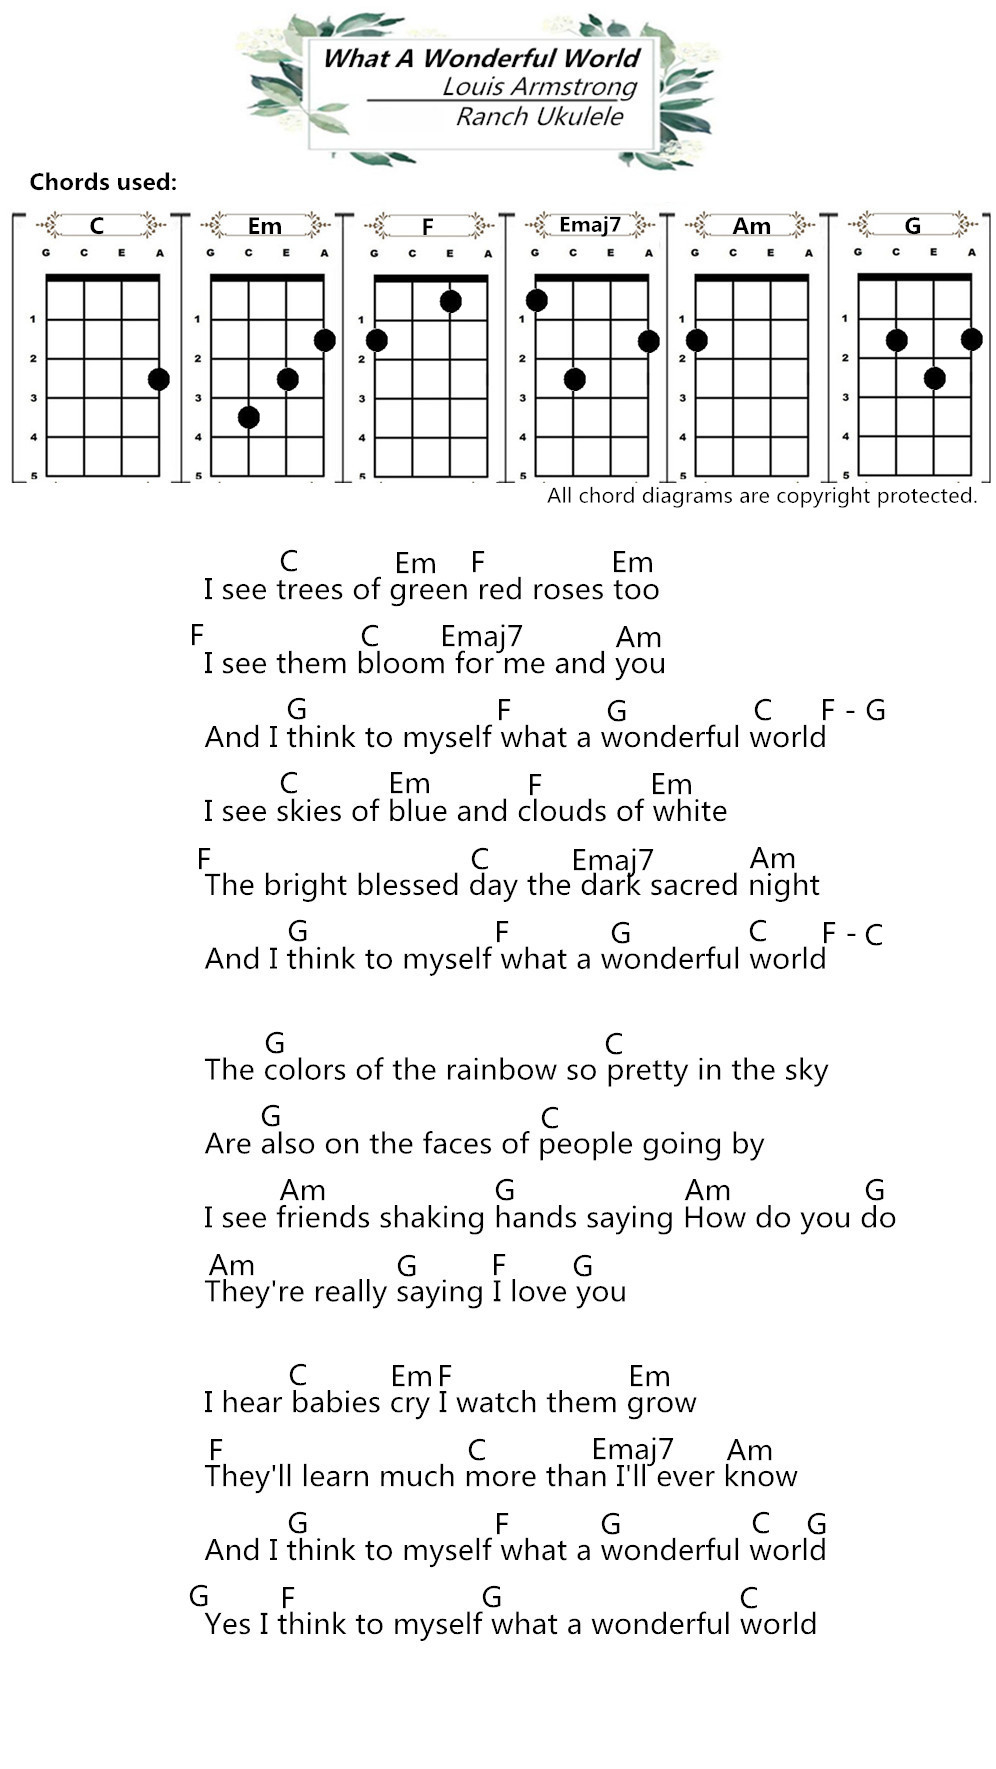 What A Wonderful World Chords Ukulele Chords What A Wonderful World Louis Armstrong Ranch